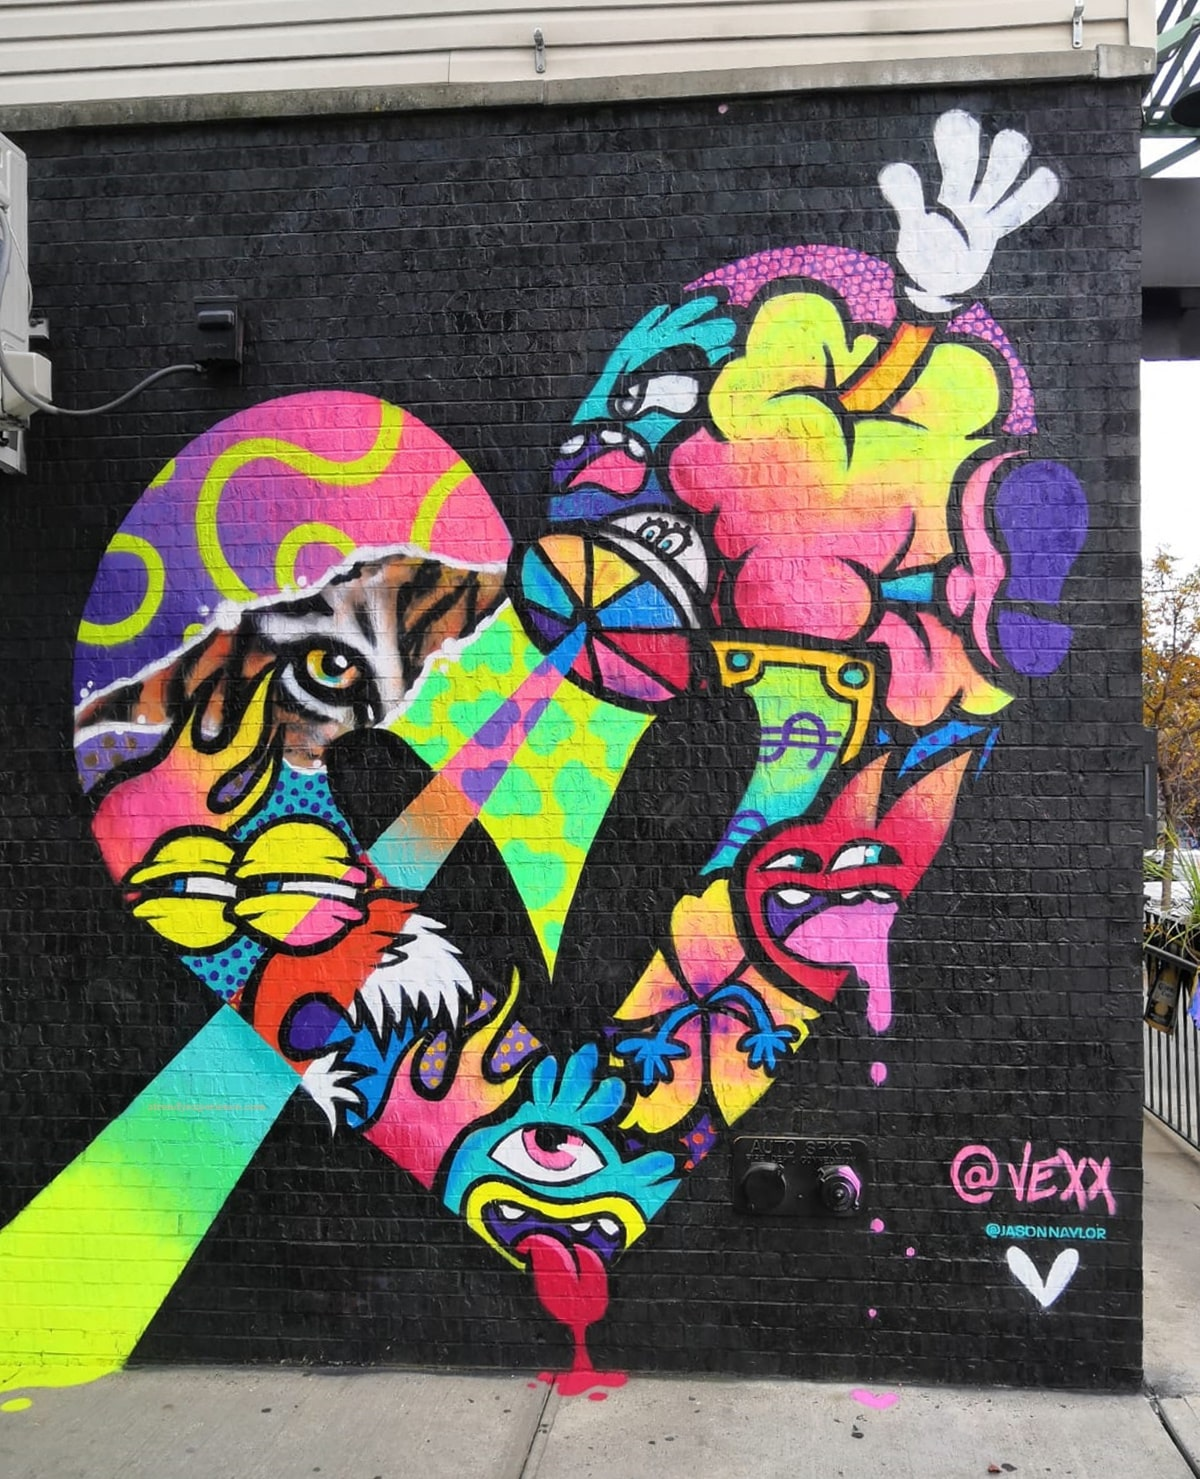 street art vexx brooklyn new york